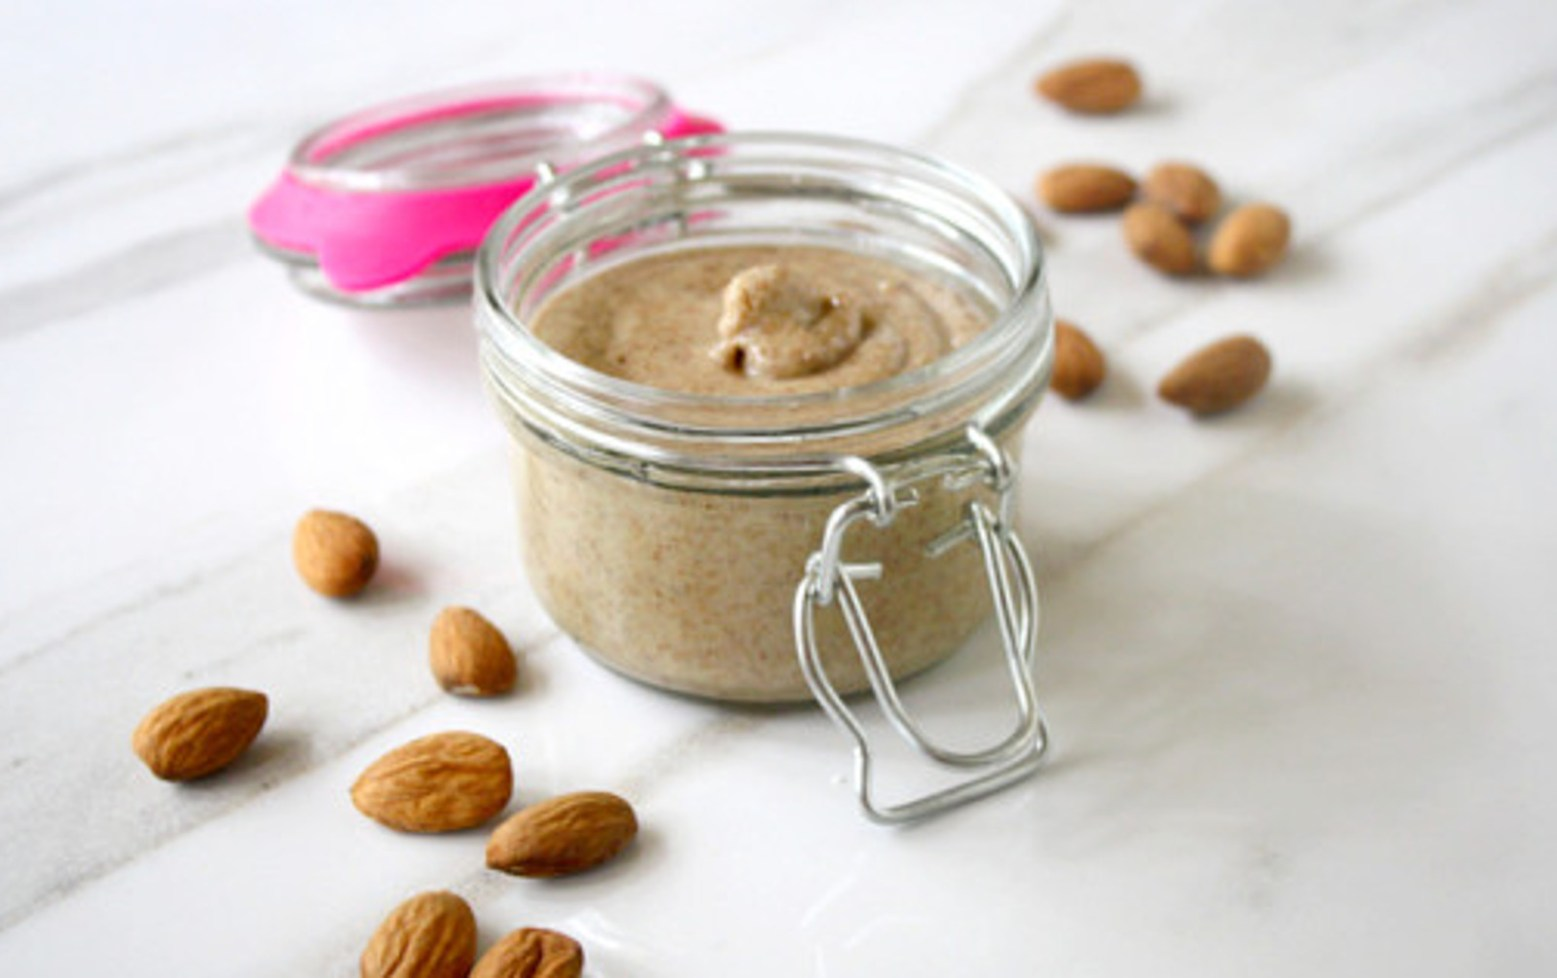 How To Make Homemade Almond Butter